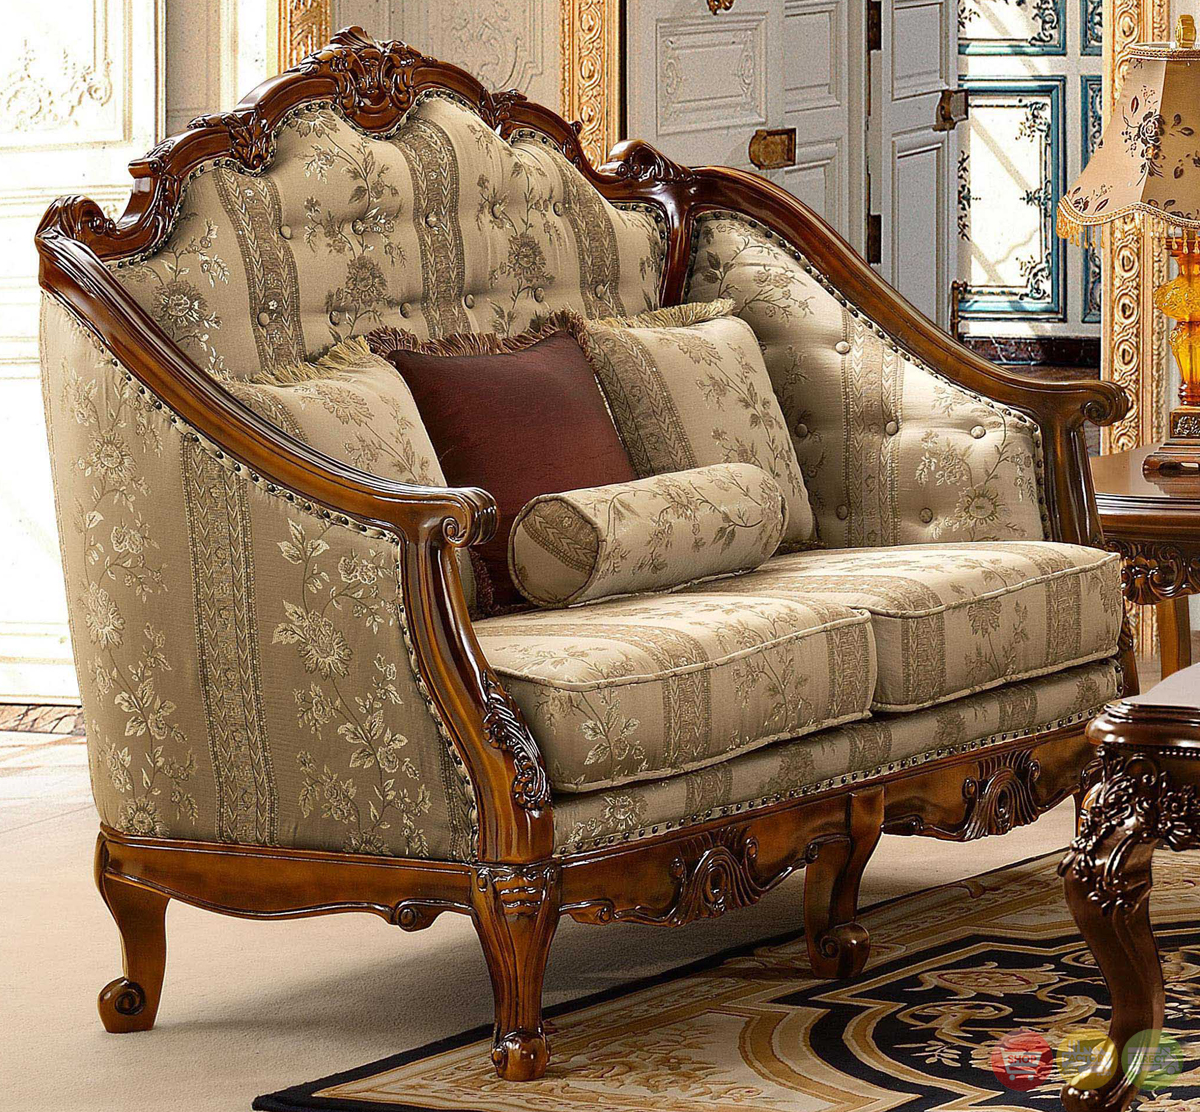 Antique style luxury formal living room furniture set hd 953 for Living style furniture